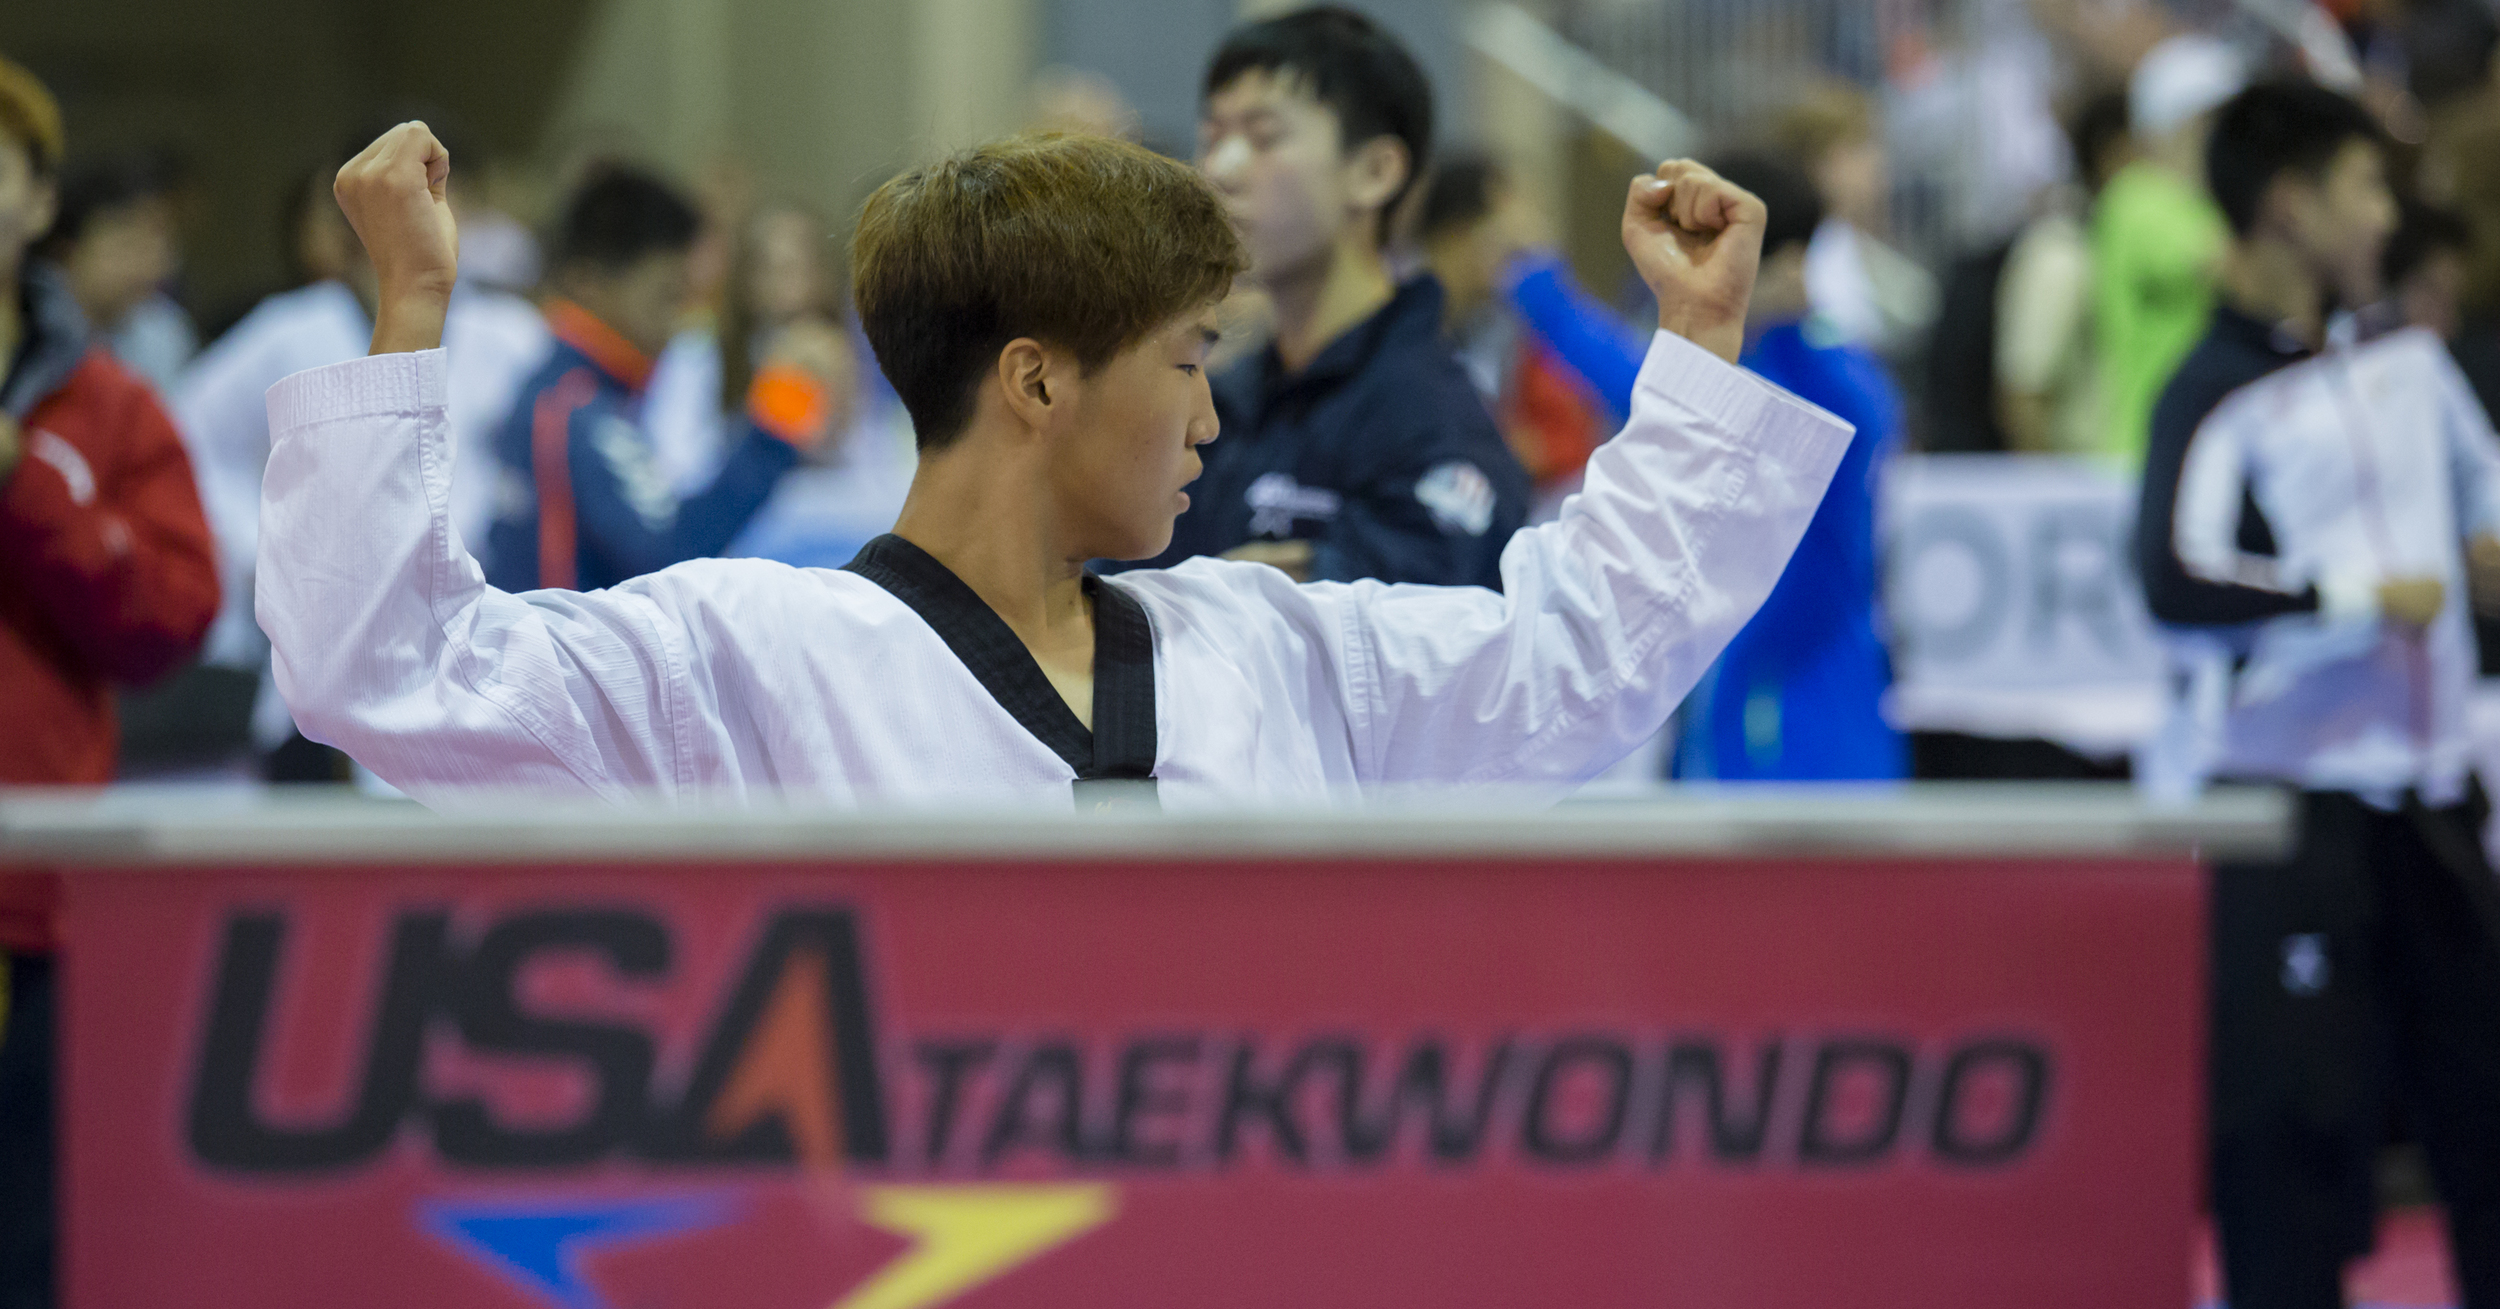 A competitor in the 2016 USA Taekwondo National Championships reherses his poomsae routine before the start on the tournament in the Greater Richmond Convention Center on Saturday, July 9, 2016.